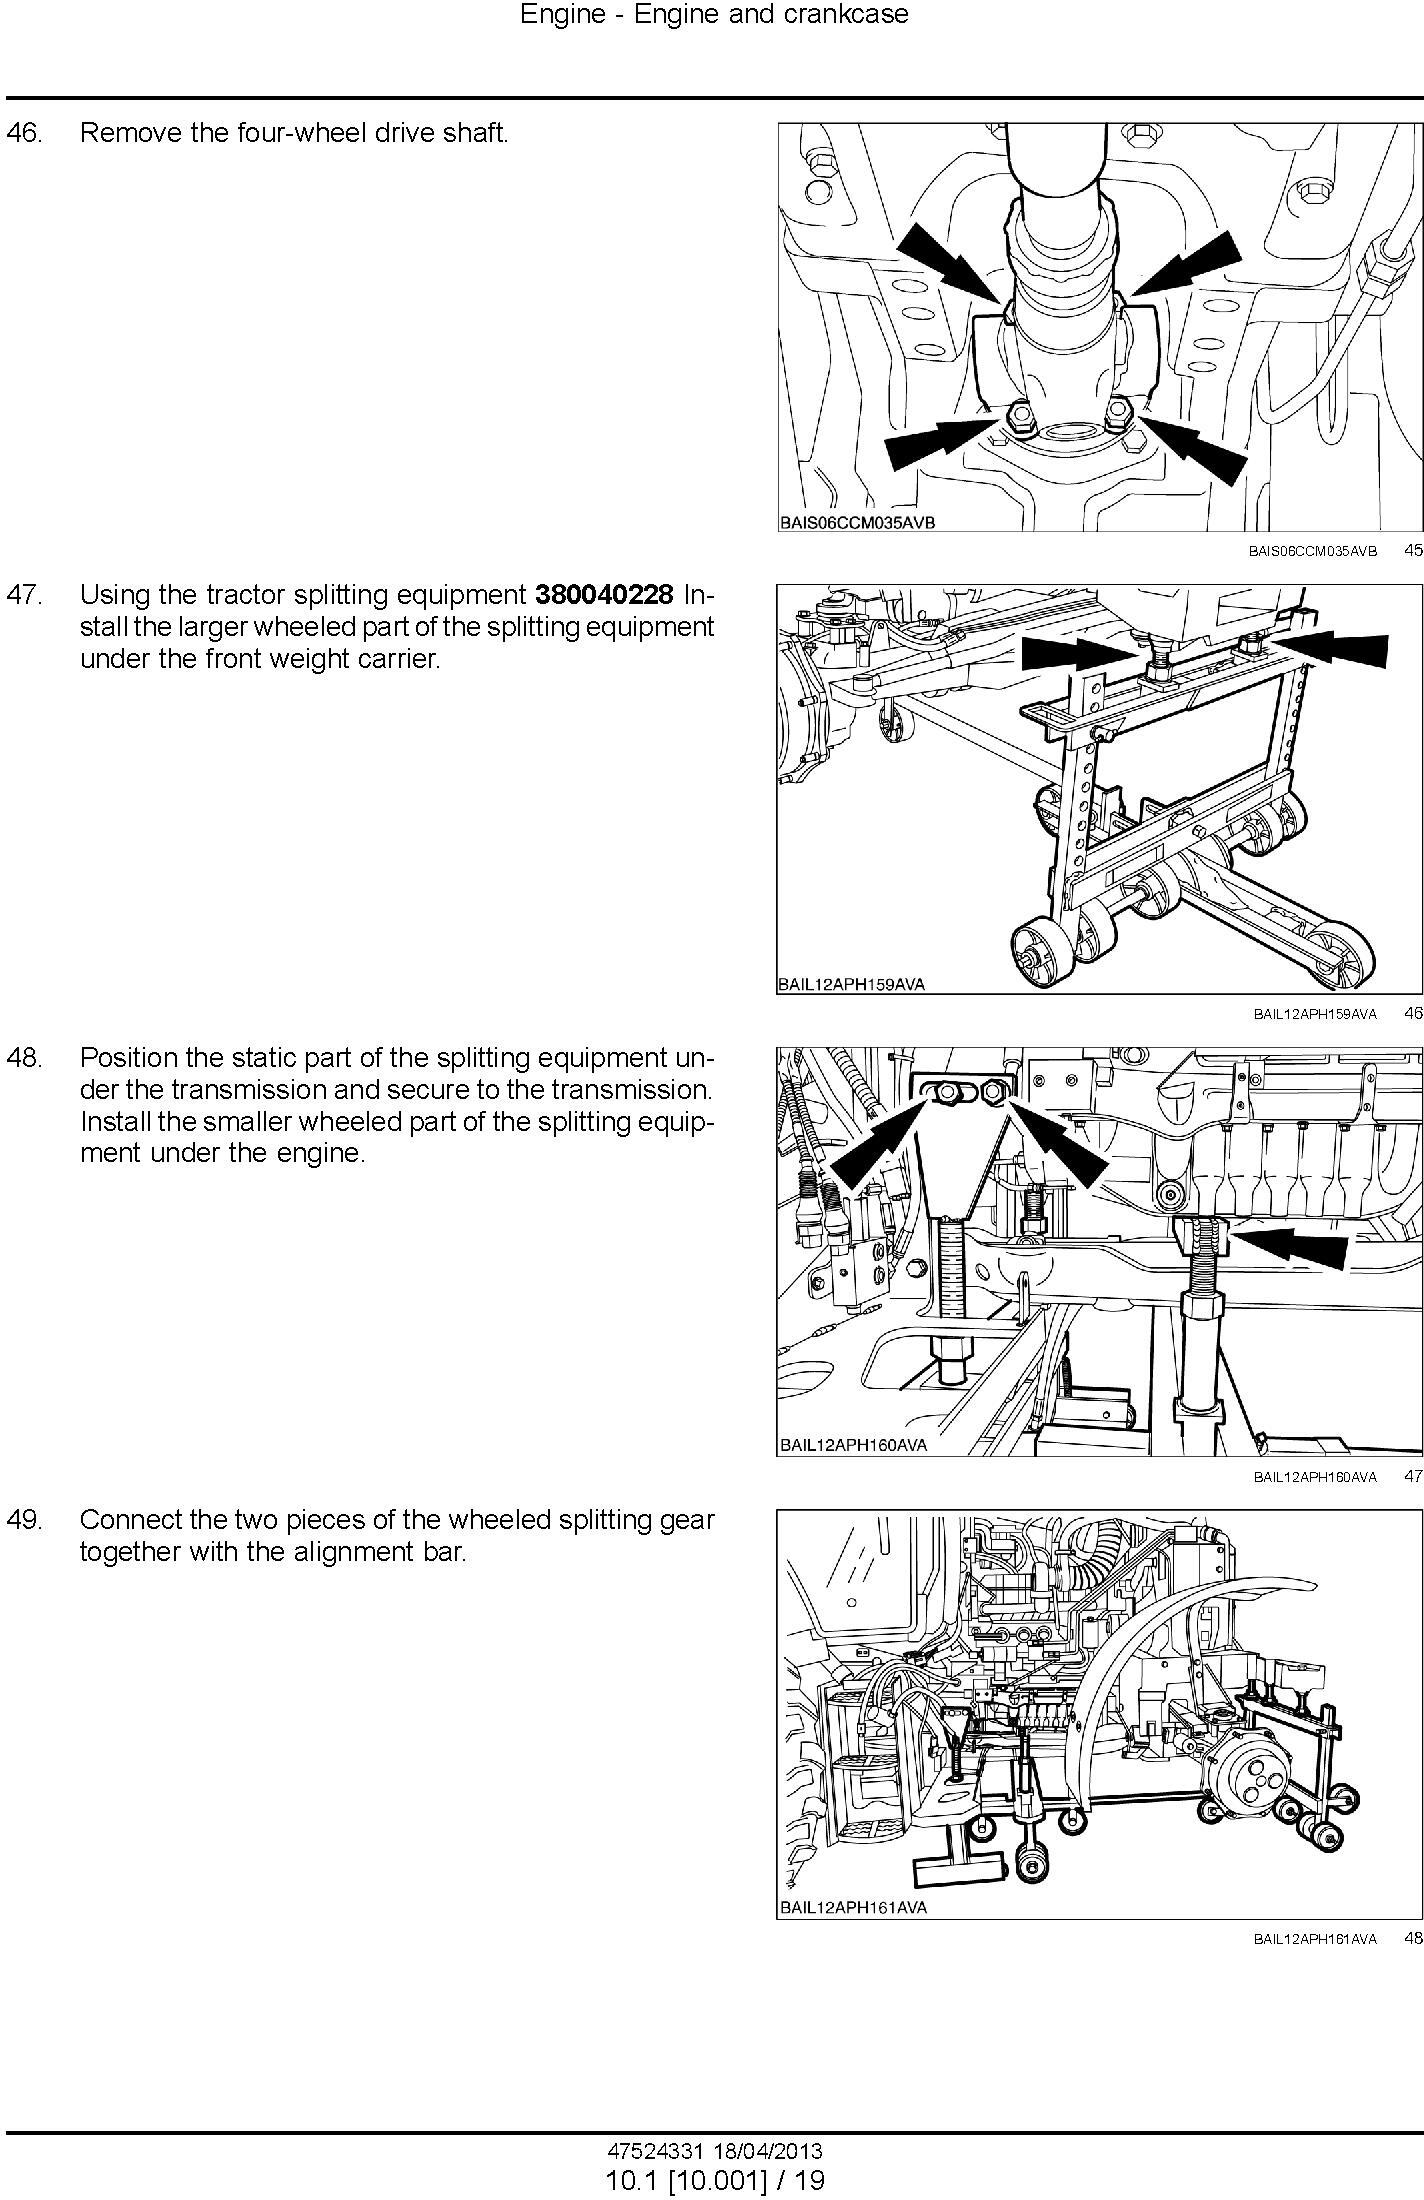 New Holland T7.220, T7.235, T7.250, T7.260, T7.270 Auto Command/Power Command Tractor Service Manual - 1